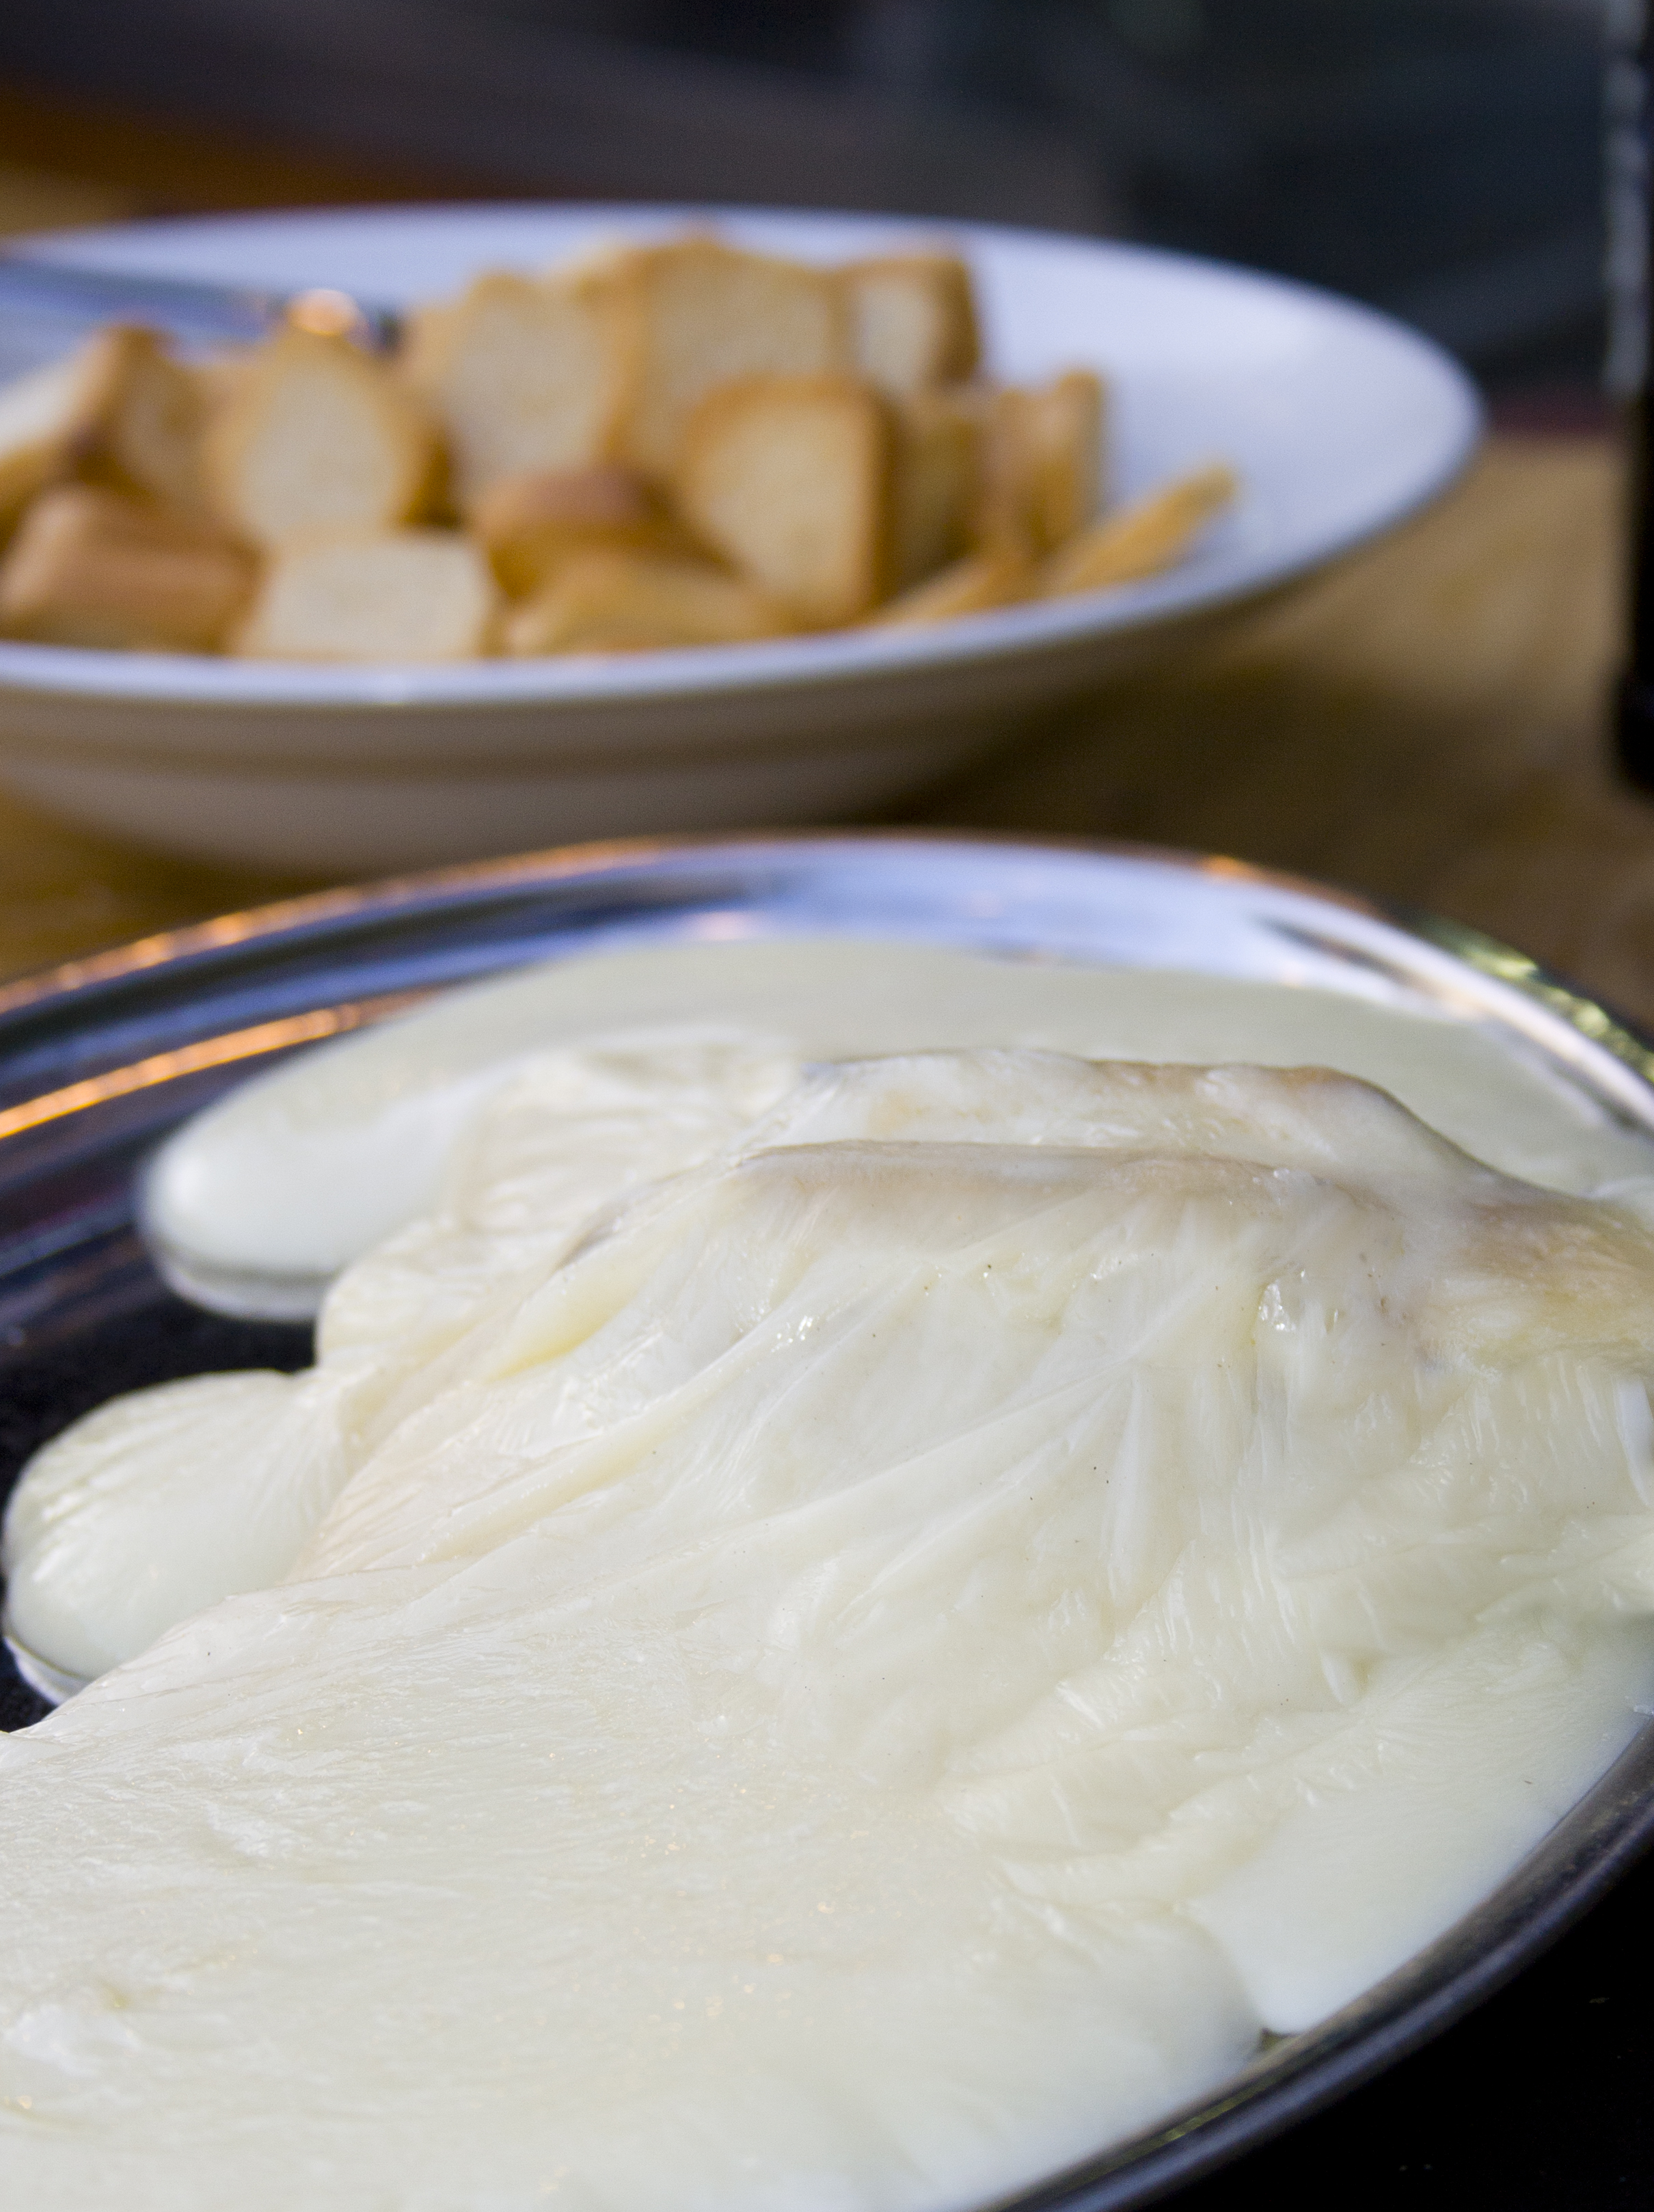 Provolone raclette